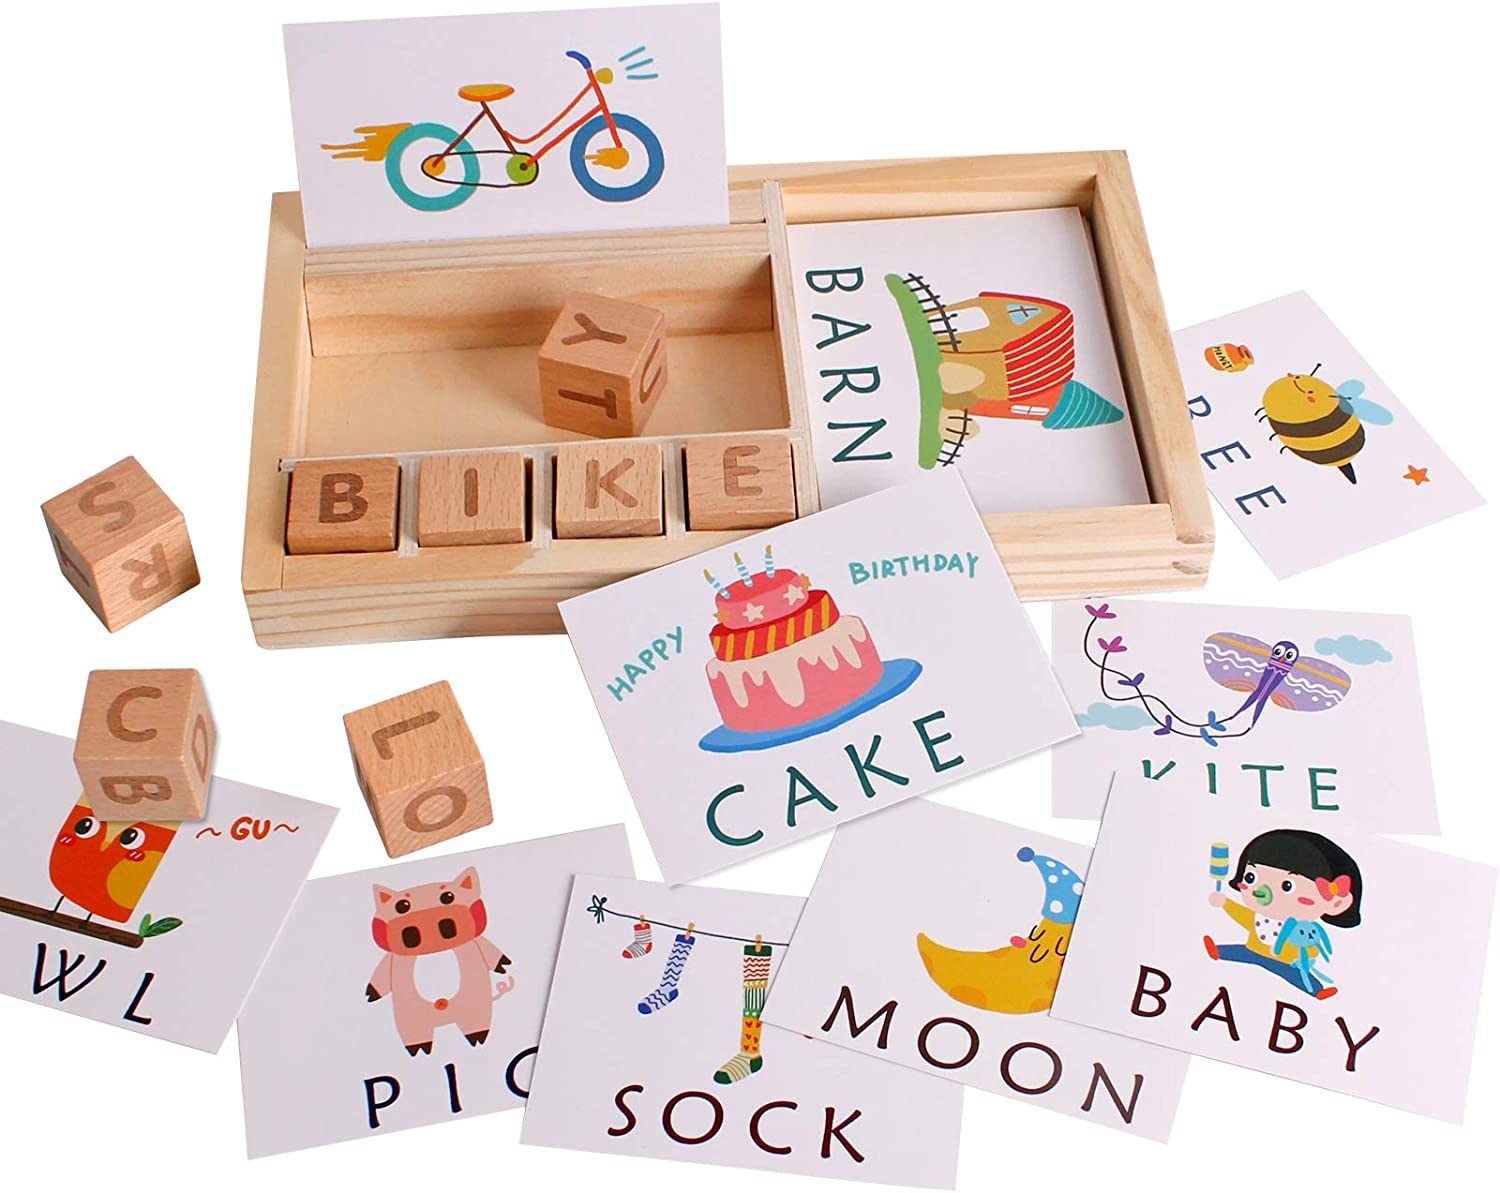 Matching Letters Toy Wooden Spelling Words Flash Cards Games, Alphabet ABC Learning Educational Montessori Puzzle Gift for Preschool Kids Boys Girls Age 3 4 5 Years Old